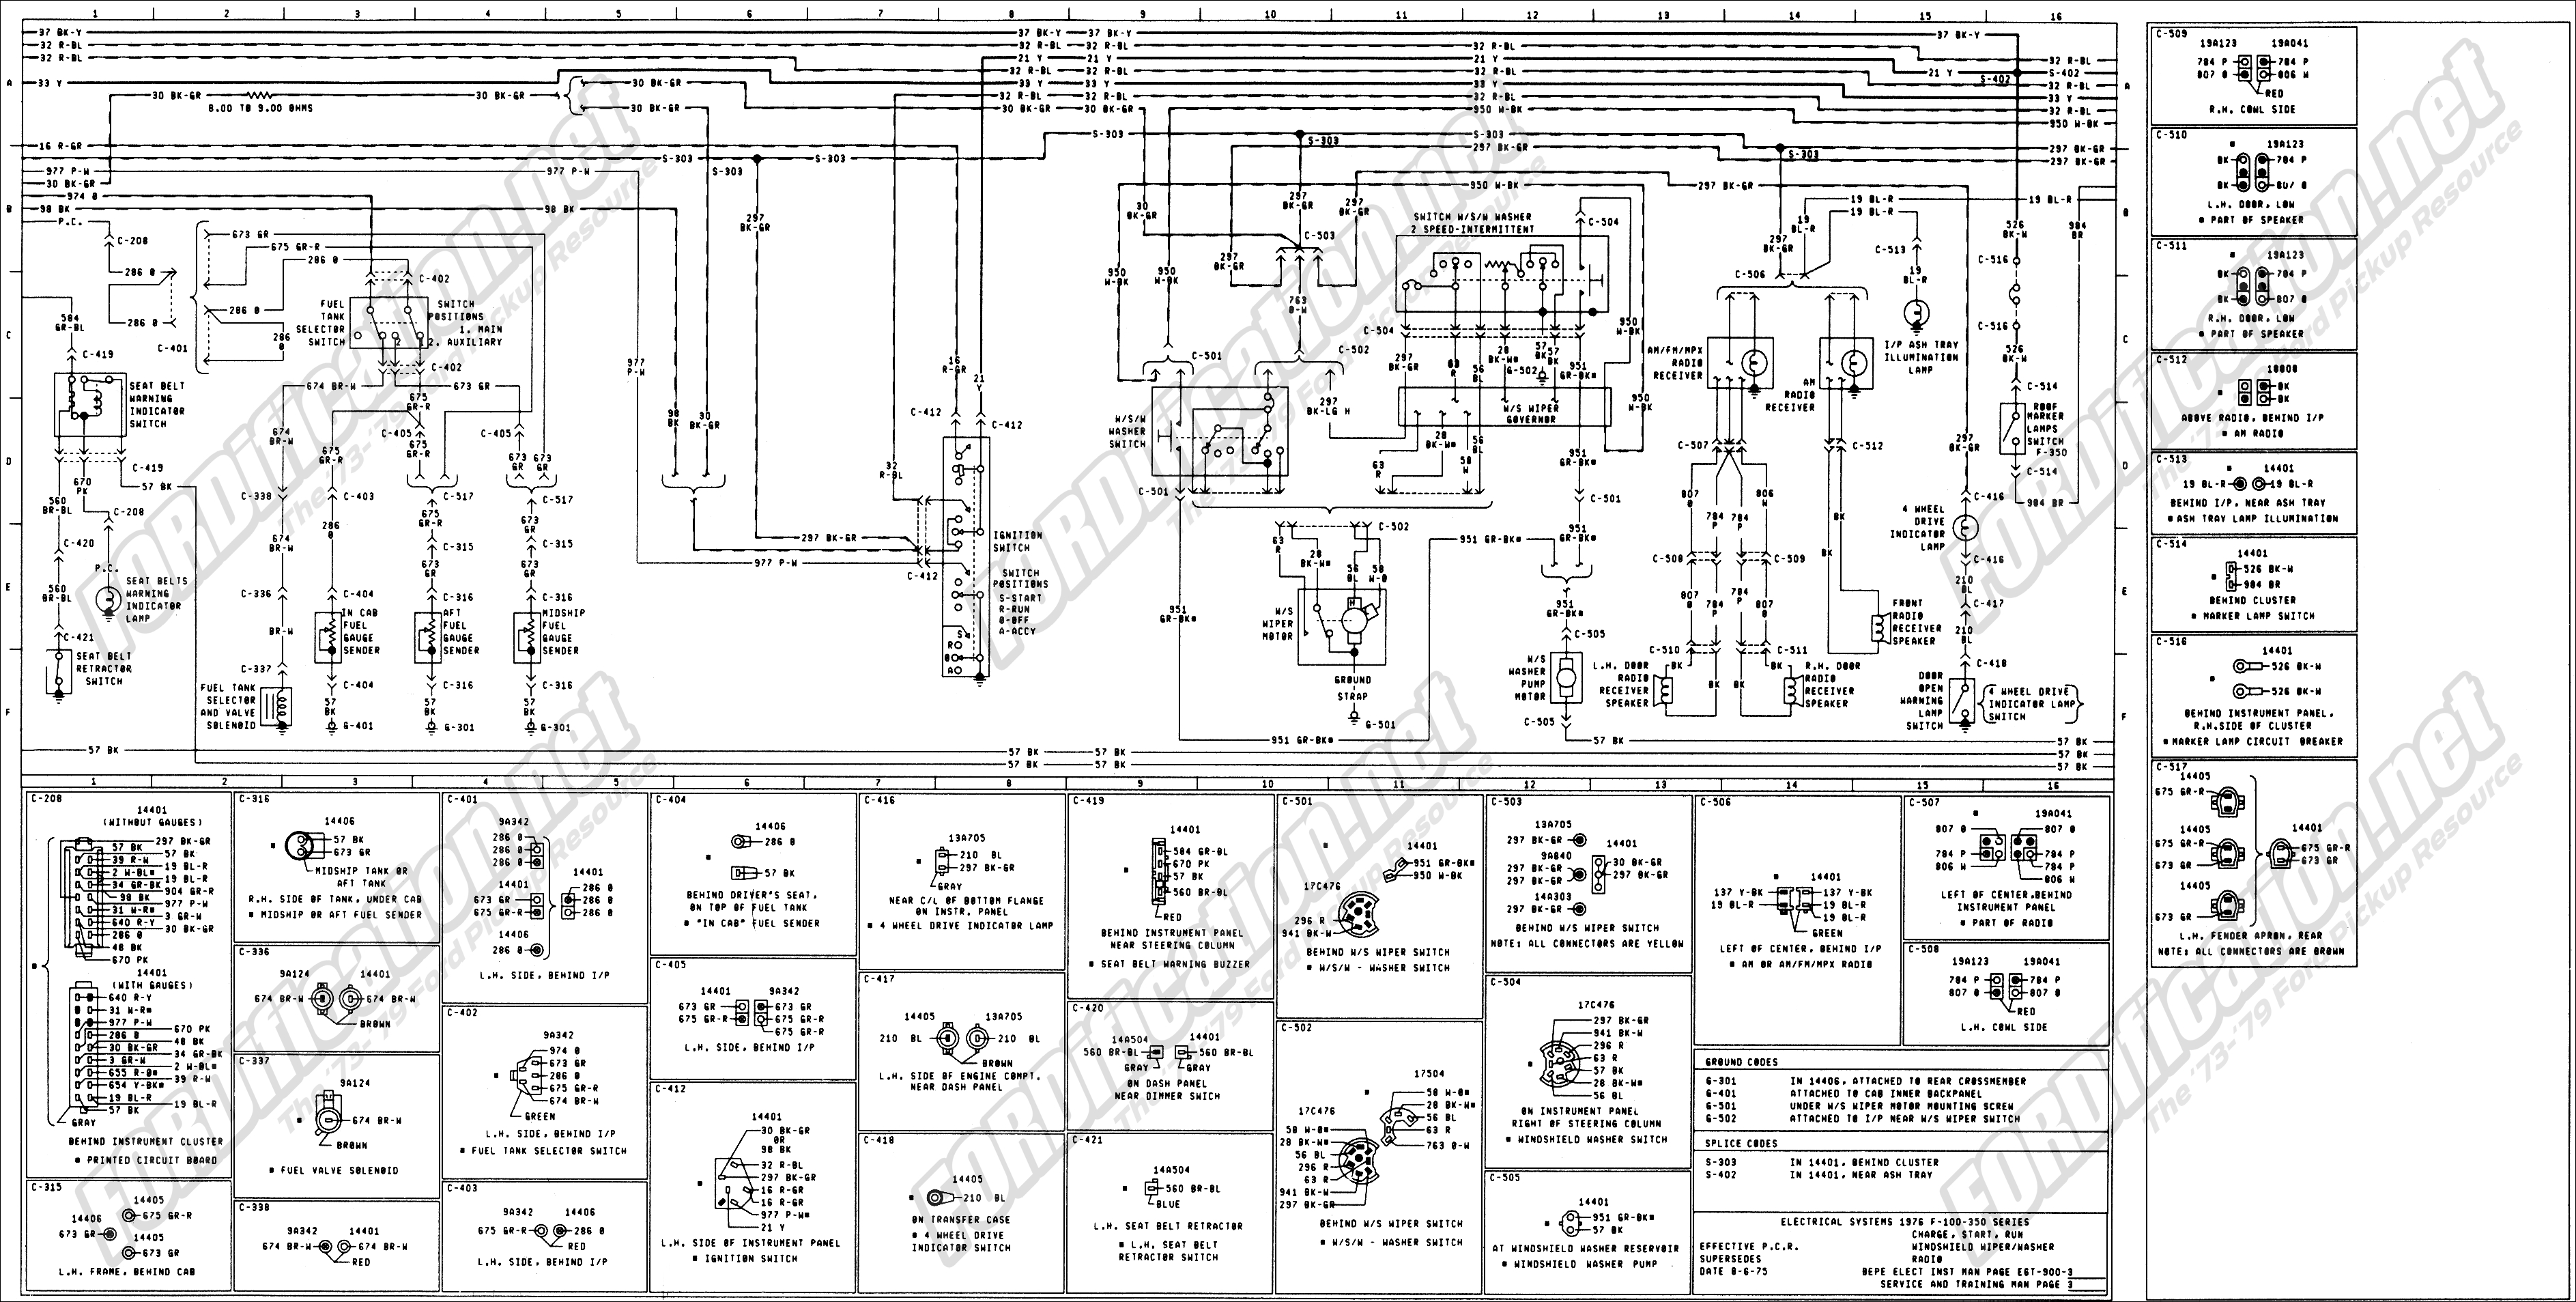 [DIAGRAM] 2004 Ford Super Duty Trailer Wiring Diagram FULL